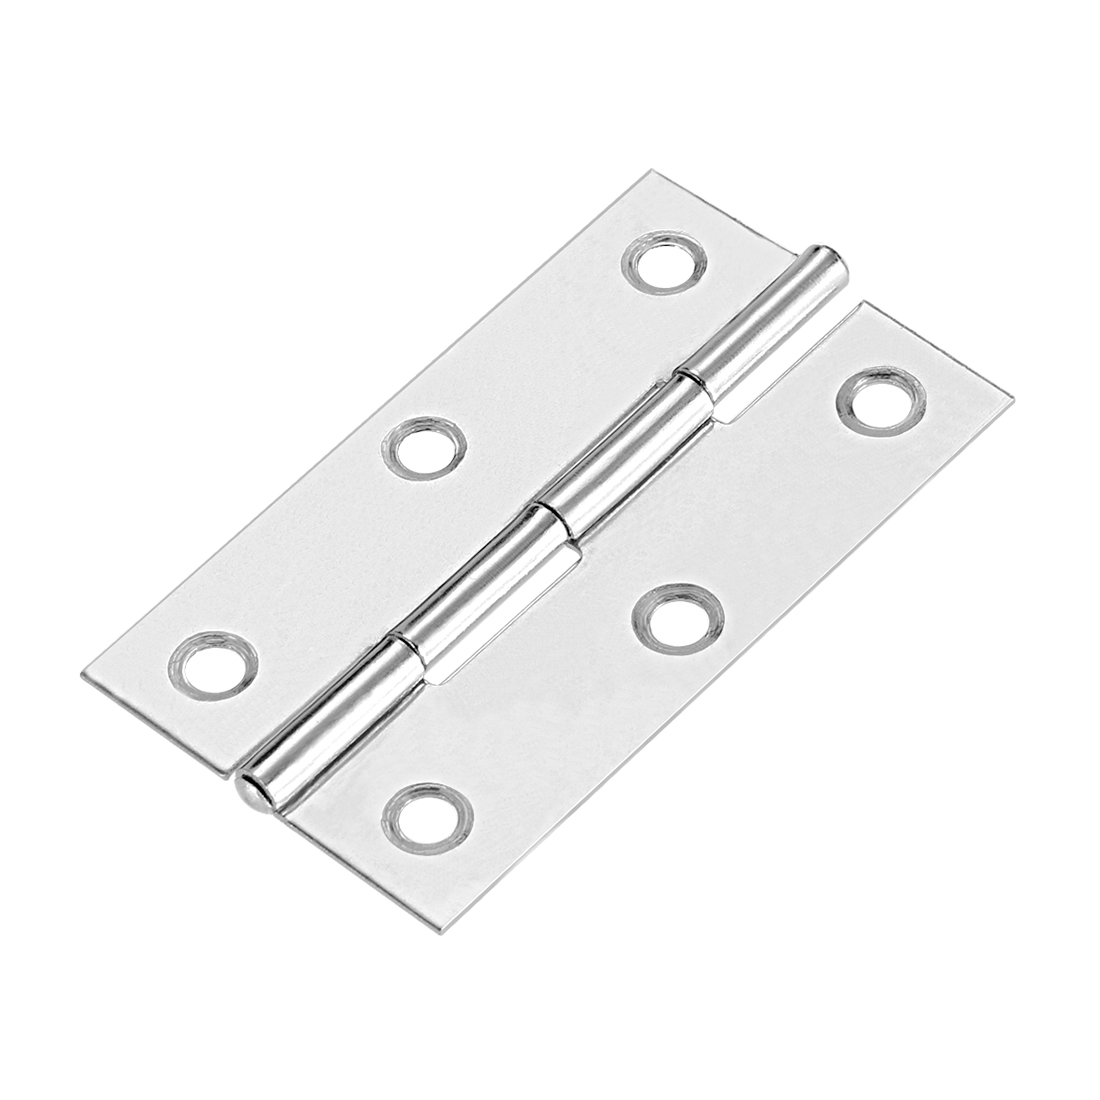 "Uxcell 2.6""  Hinge Silver Door Cabinet Hinges Fittings Brushed Chrome Plain 10pcs - image 6 de 6"